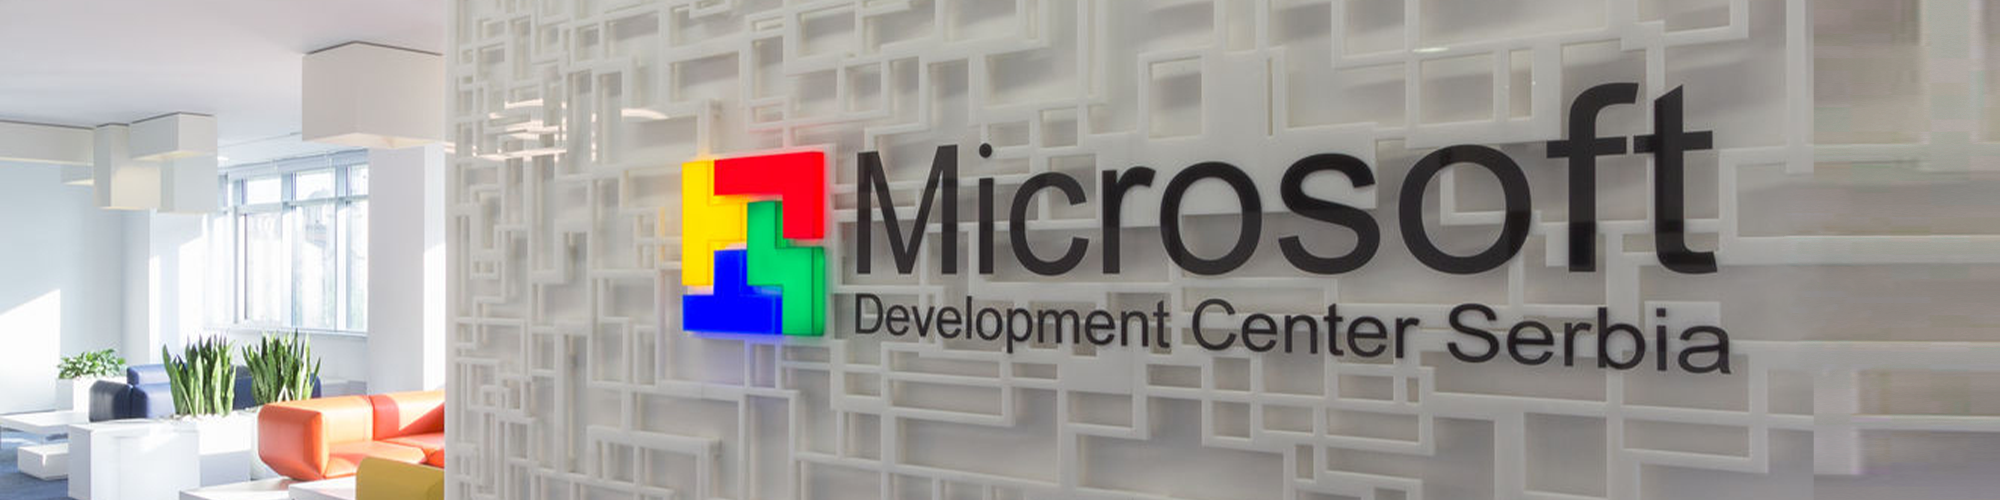 Microsoft Development Center Serbia (MDCS)